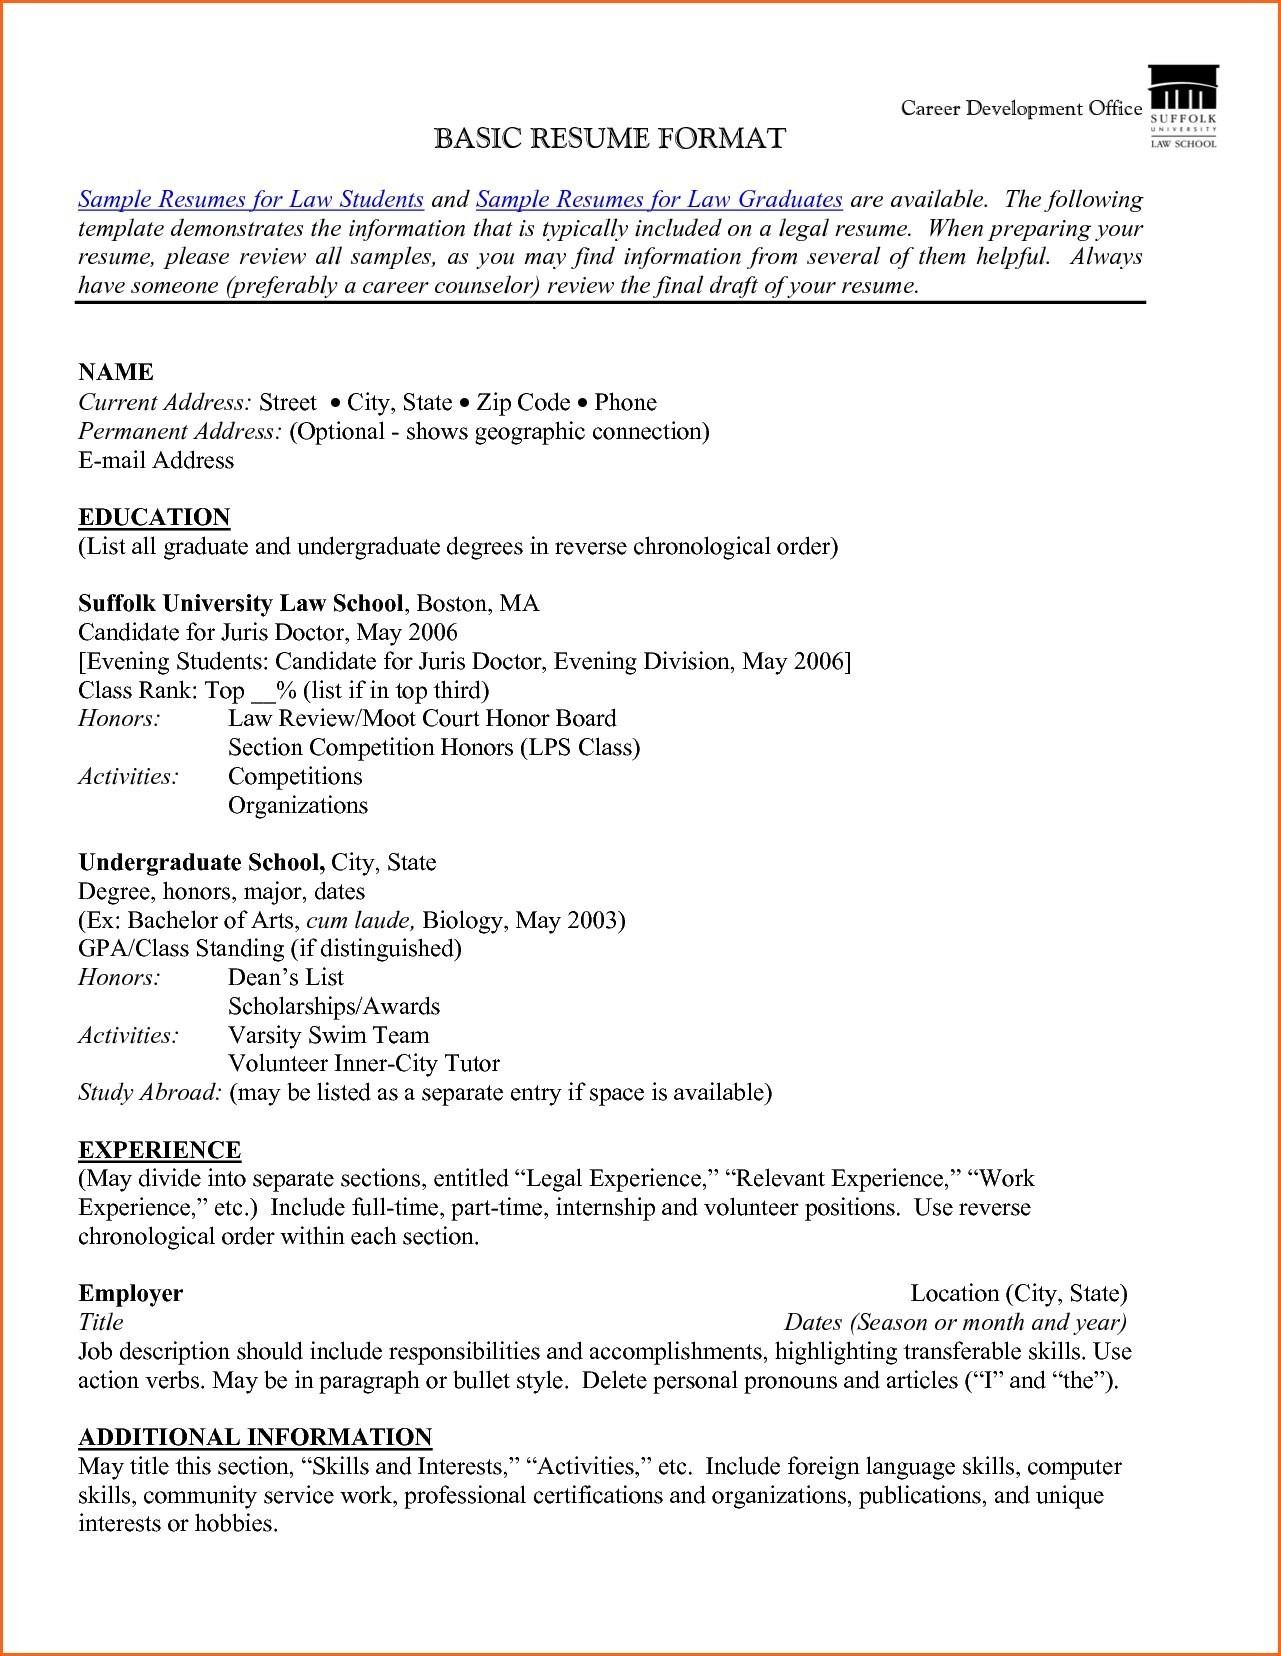 reverse chronological order resume example-Reverse Chronological order Resume 4-n